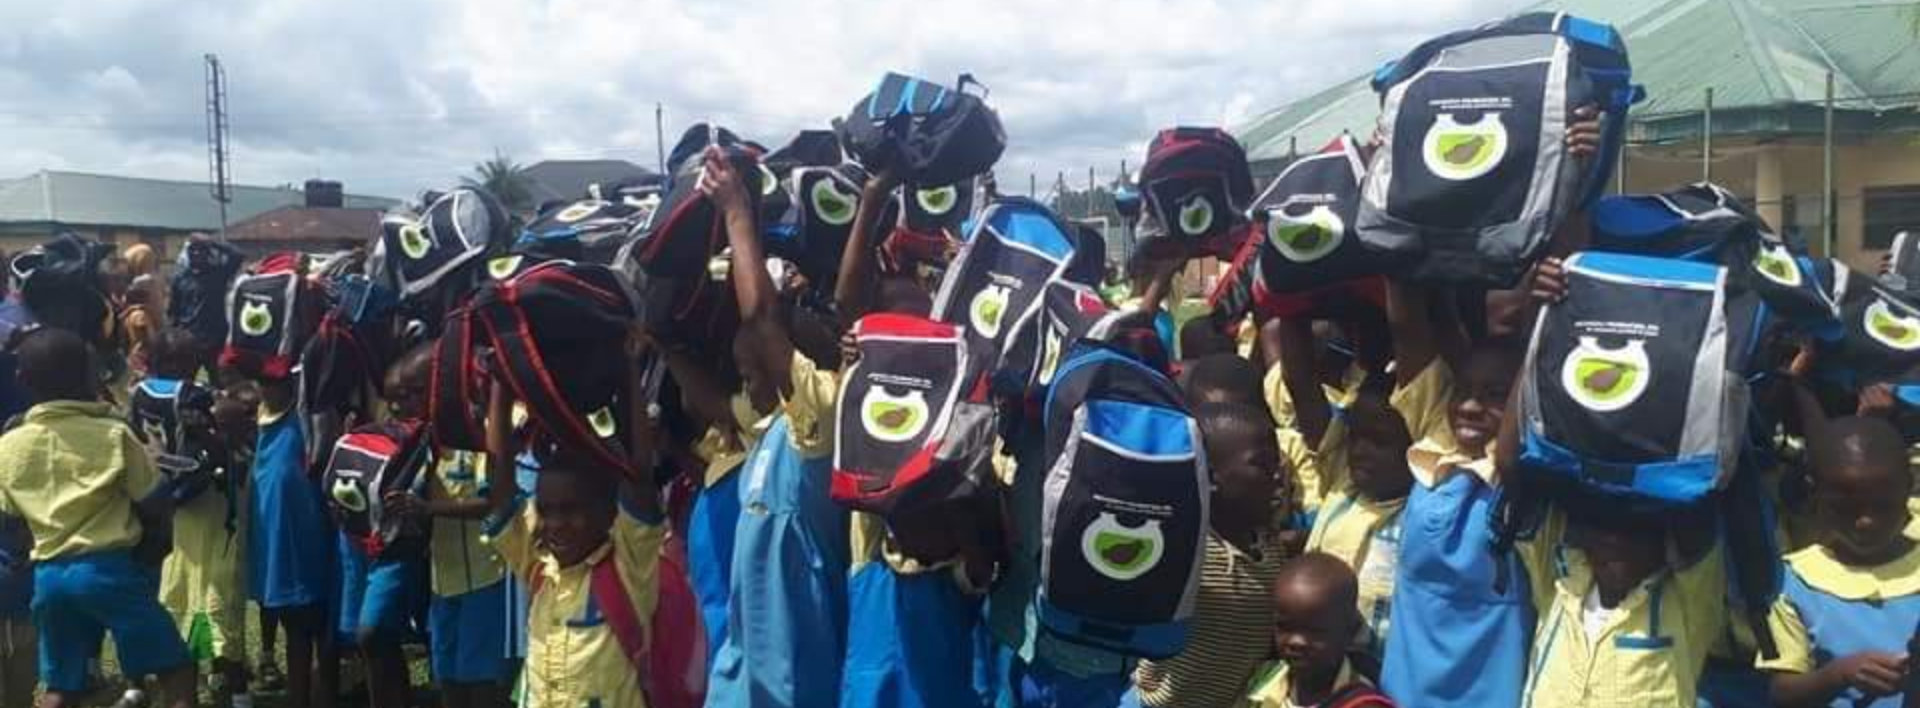 kids holding school bags